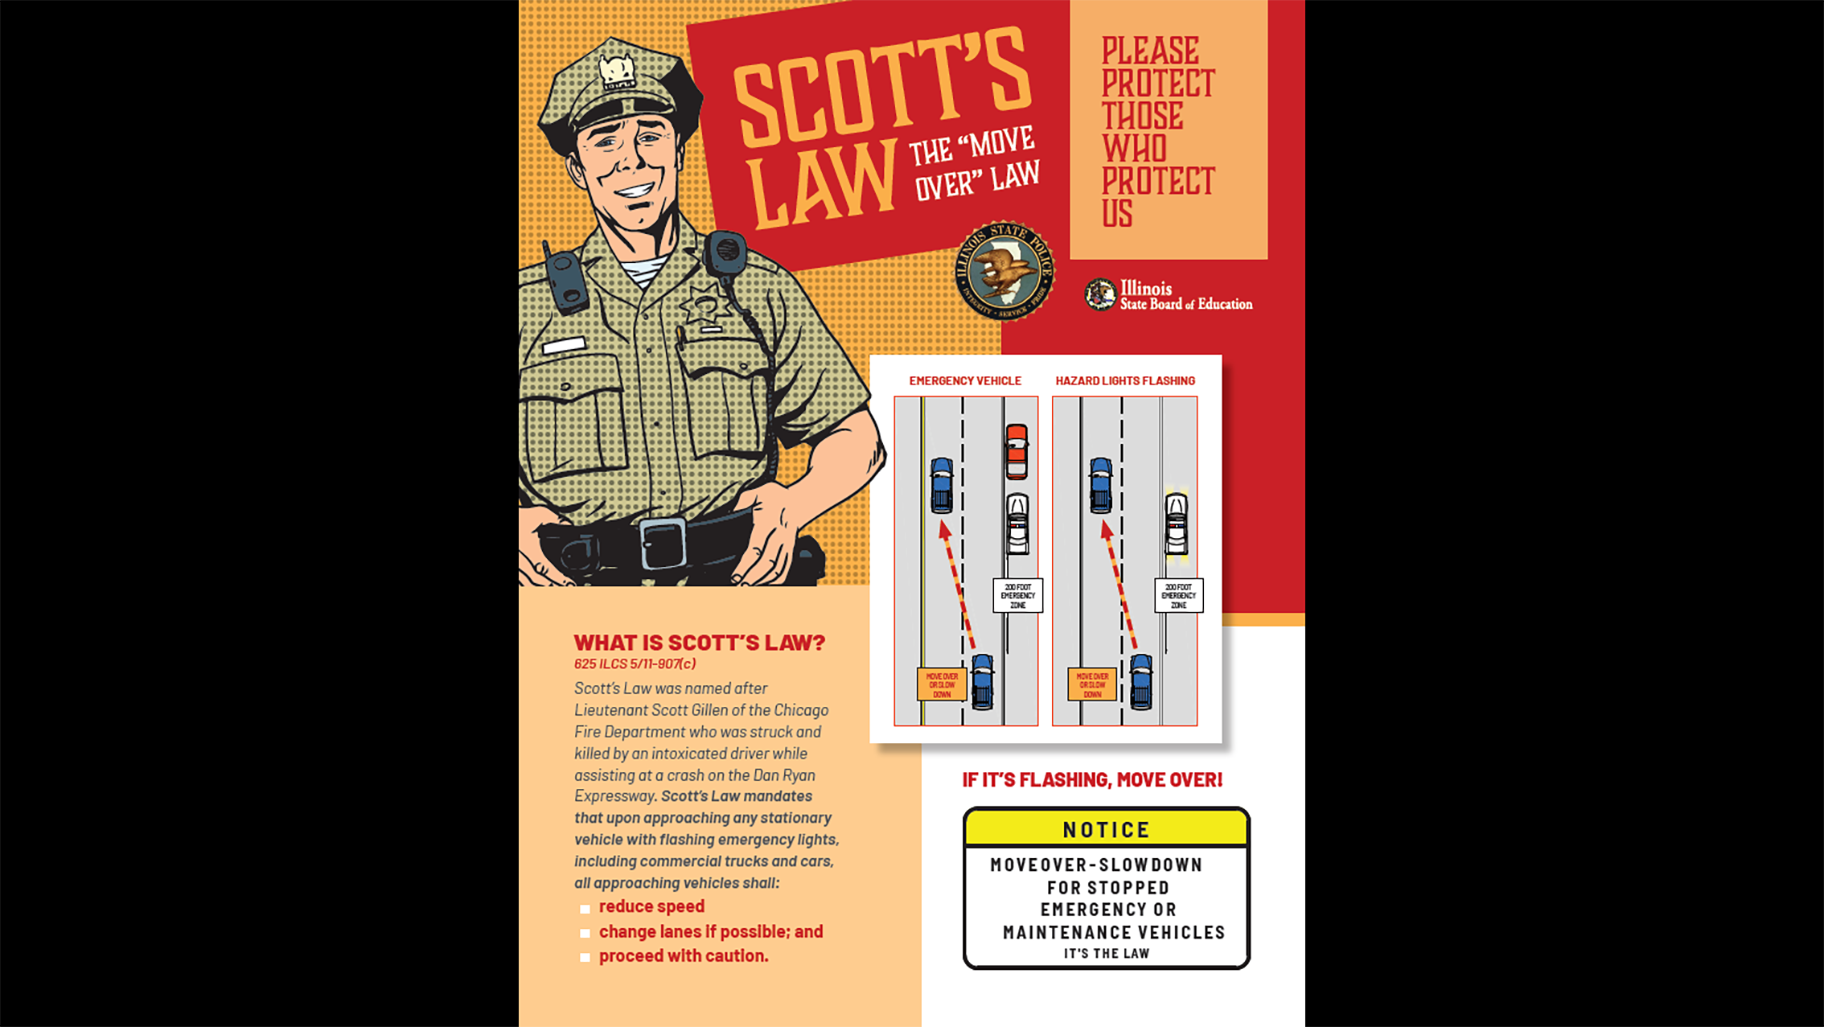 Scott's Law flyer (Illinois State Board of Education)